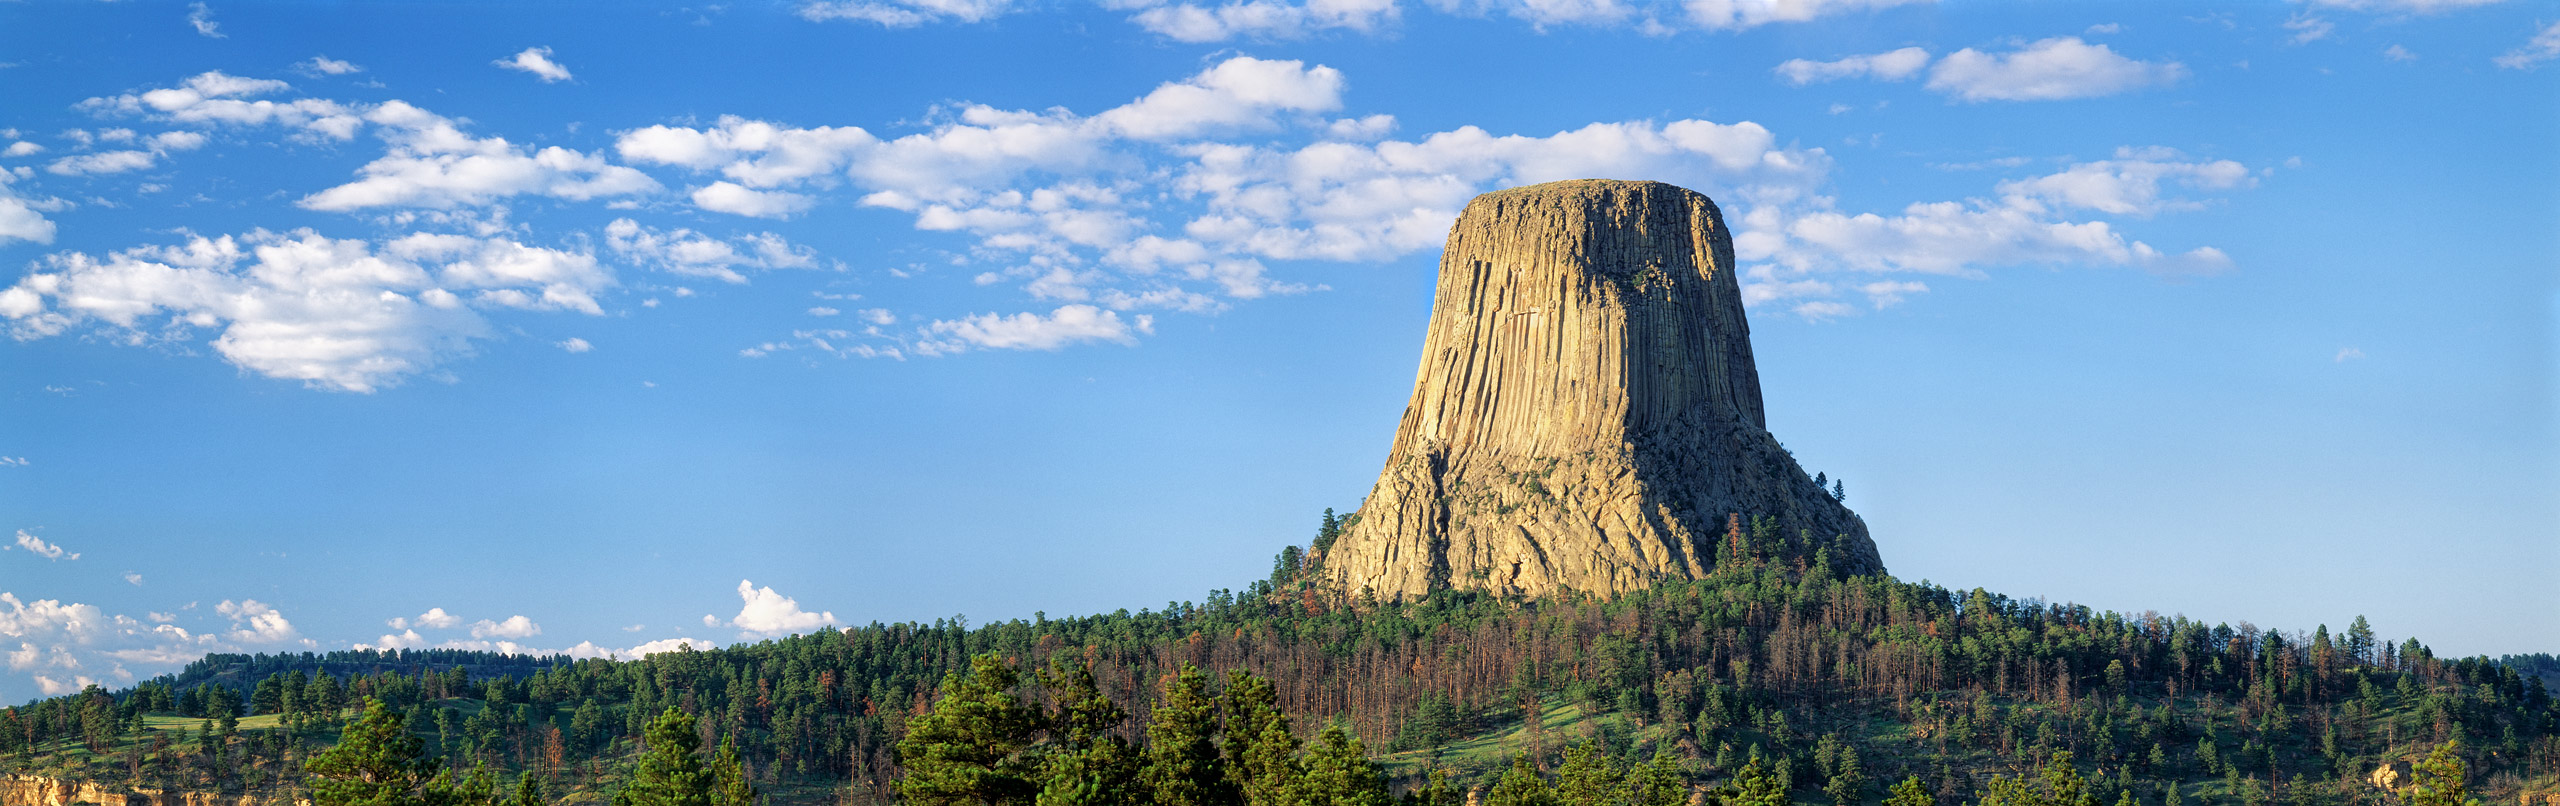 Devils Tower, Devils Tower National Monument, Wyoming, USA clouds